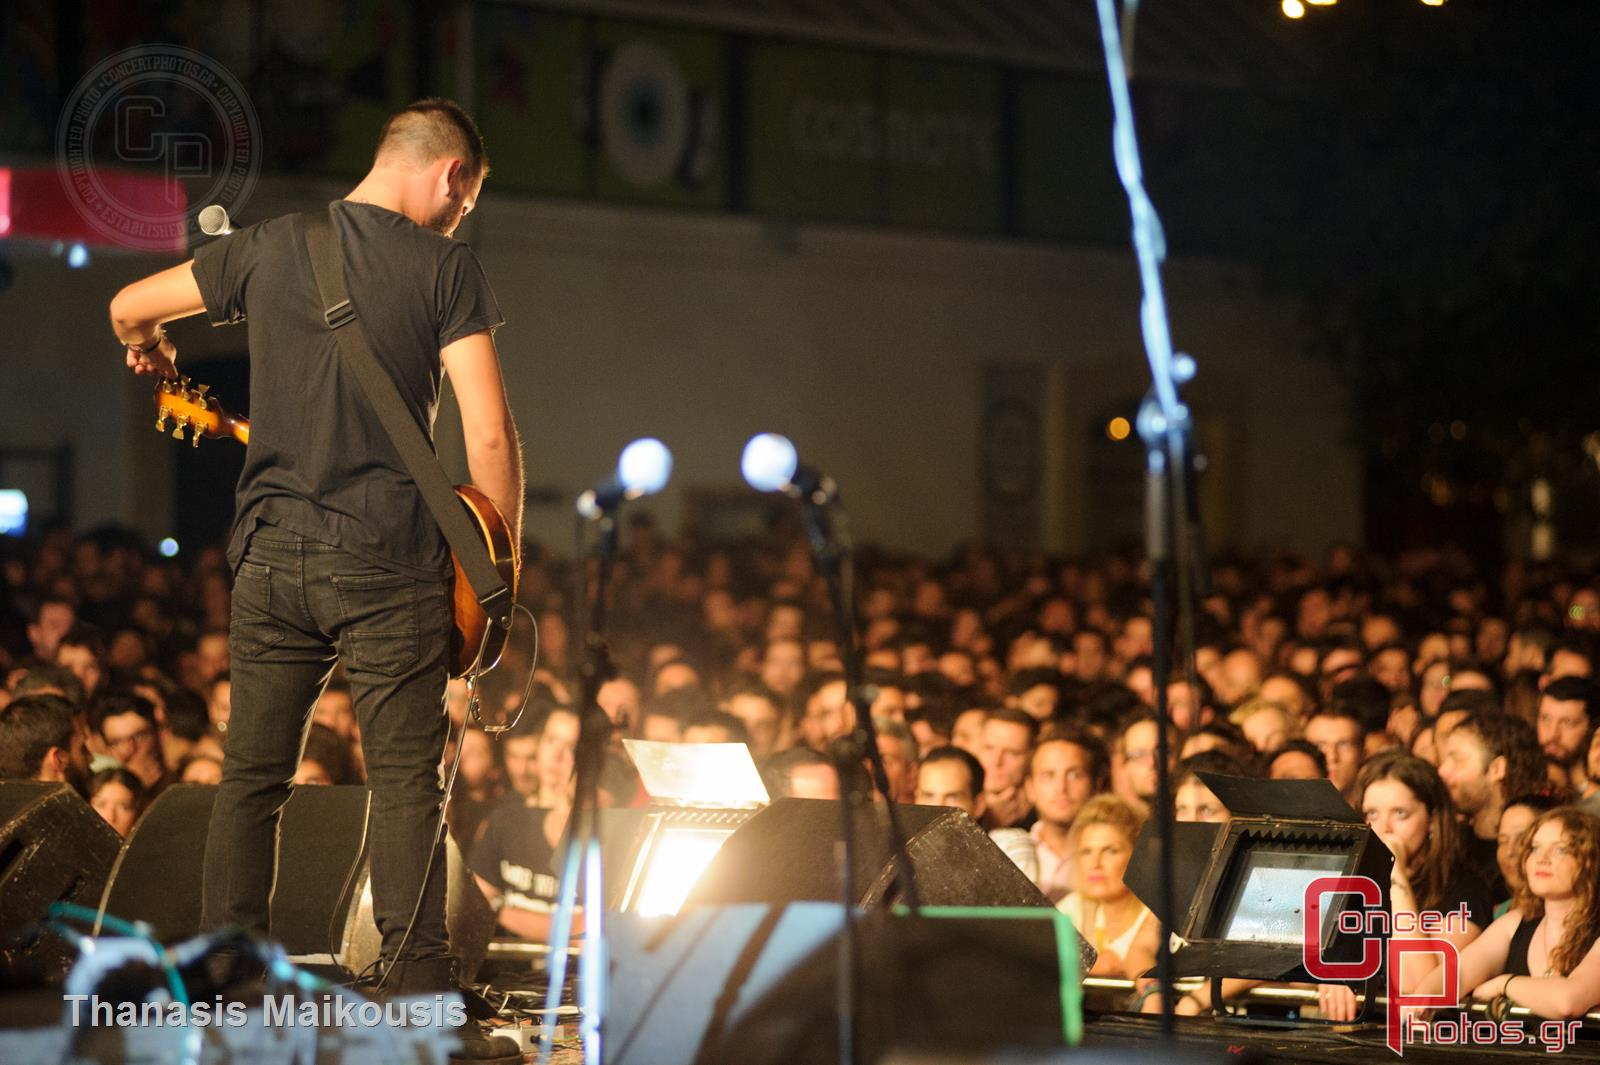 VIC-VIC-Technopolis photographer: Thanasis Maikousis - concertphotos_20150925_21_41_55